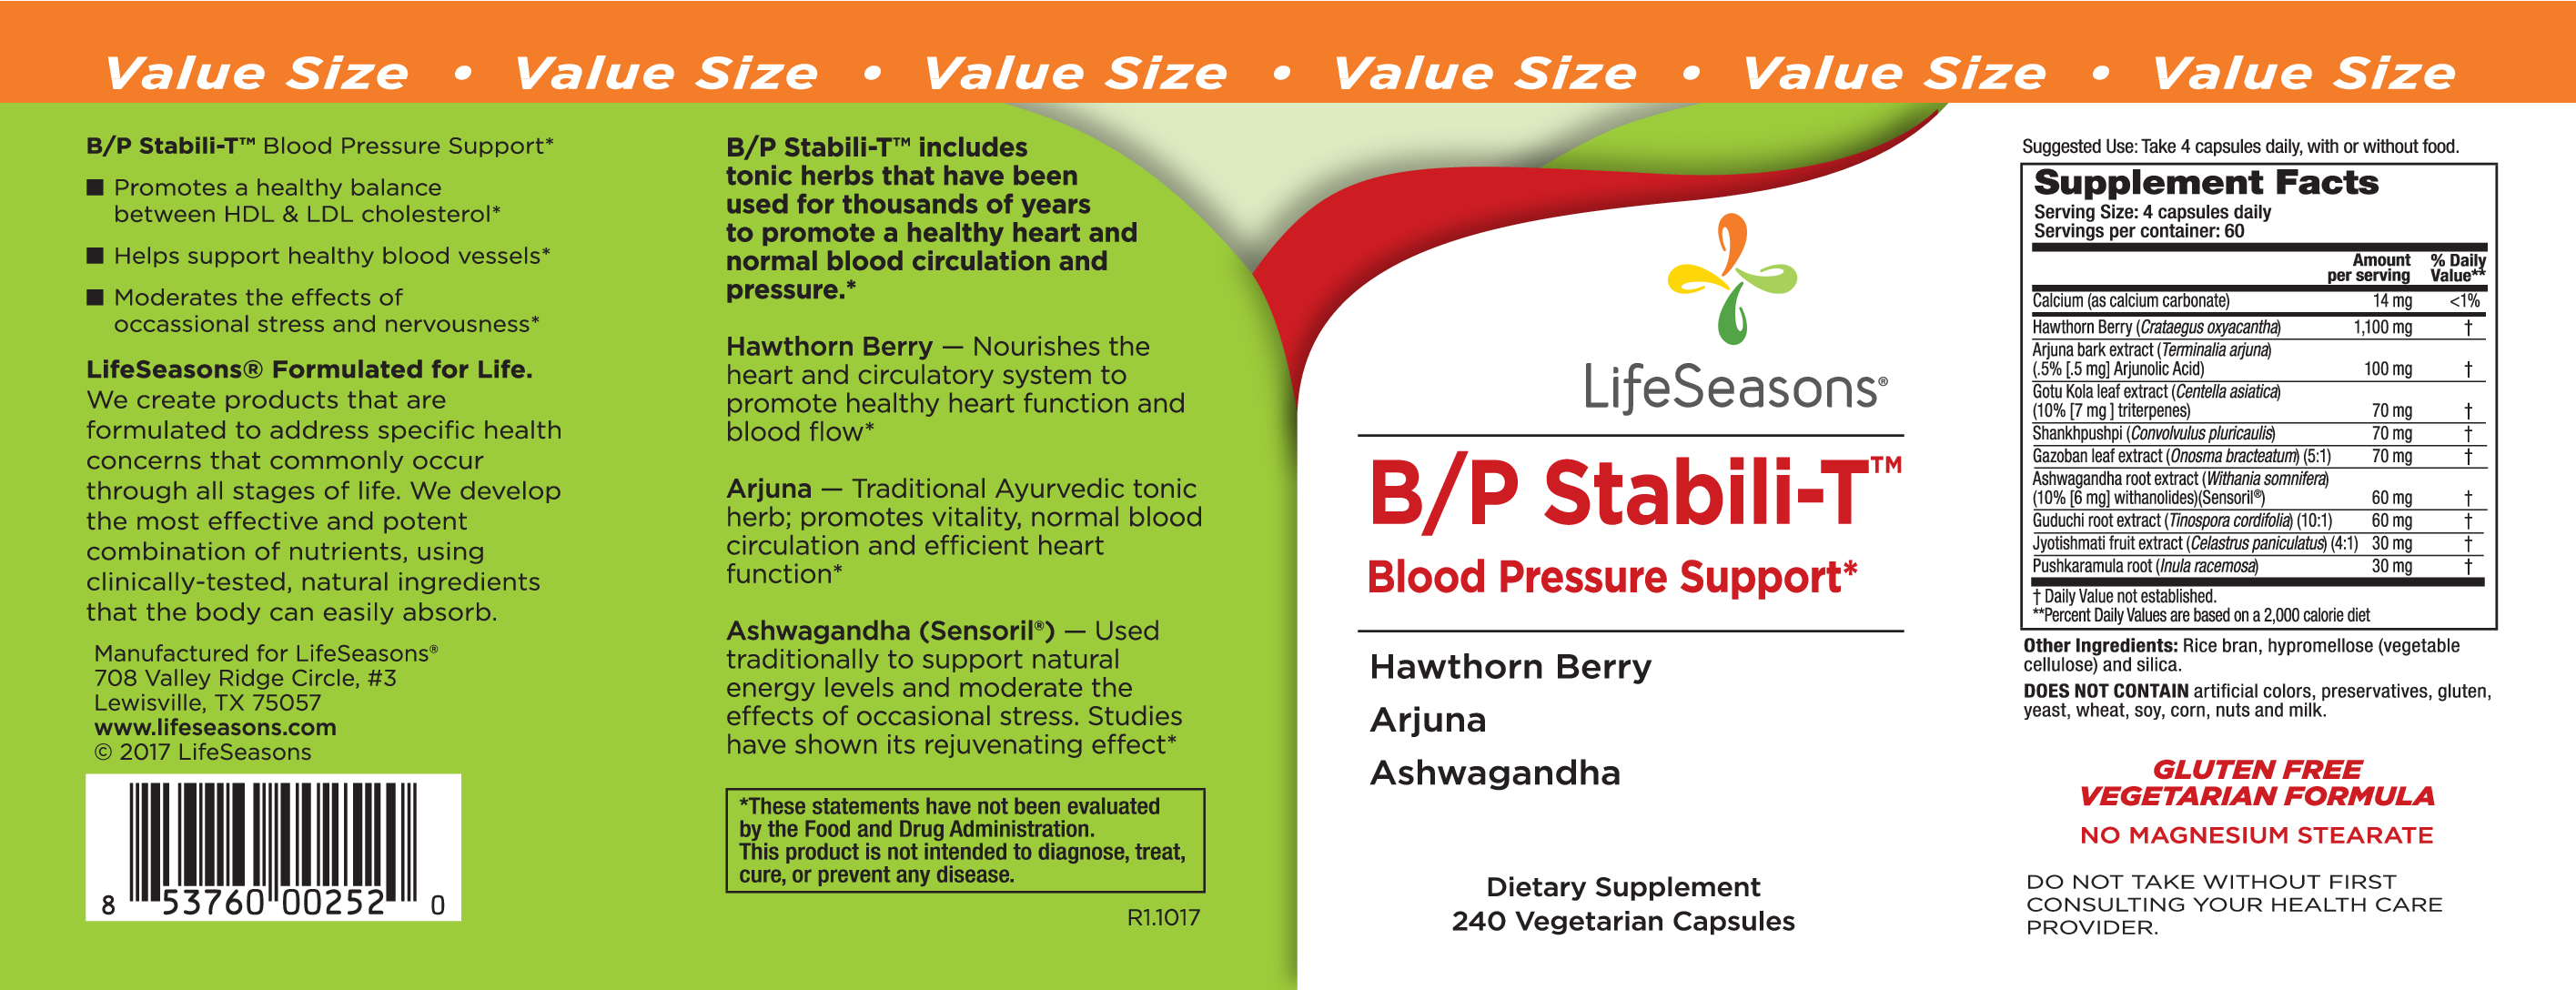 B/p Stabili-t Blood Pressure Support Dietary Supplement | The